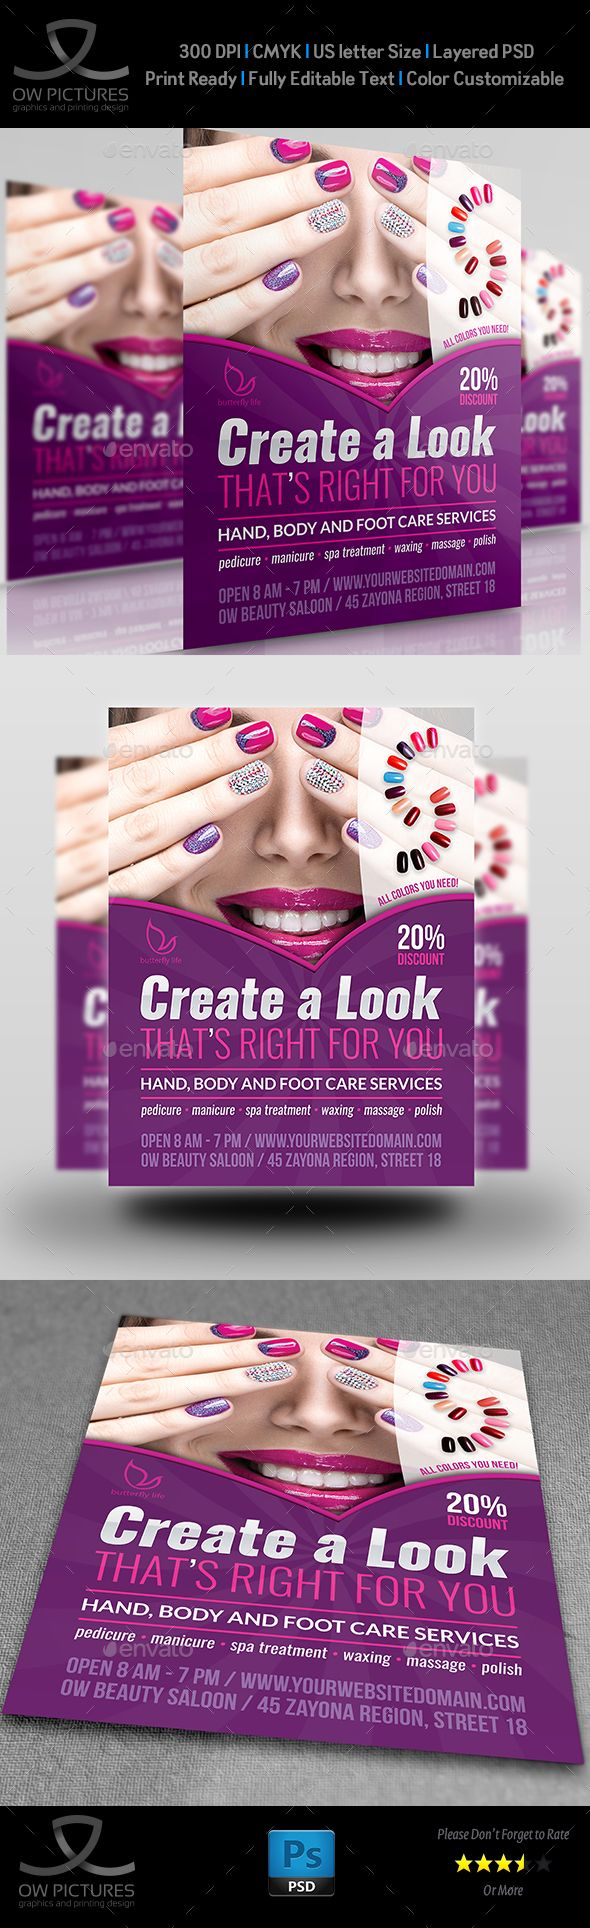 Nails Salon Flyer Template - Commerce Flyer Template PSD. Download here: http://graphicriver.net/item/nails-salon-flyer-template/16532976?ref=yinkira